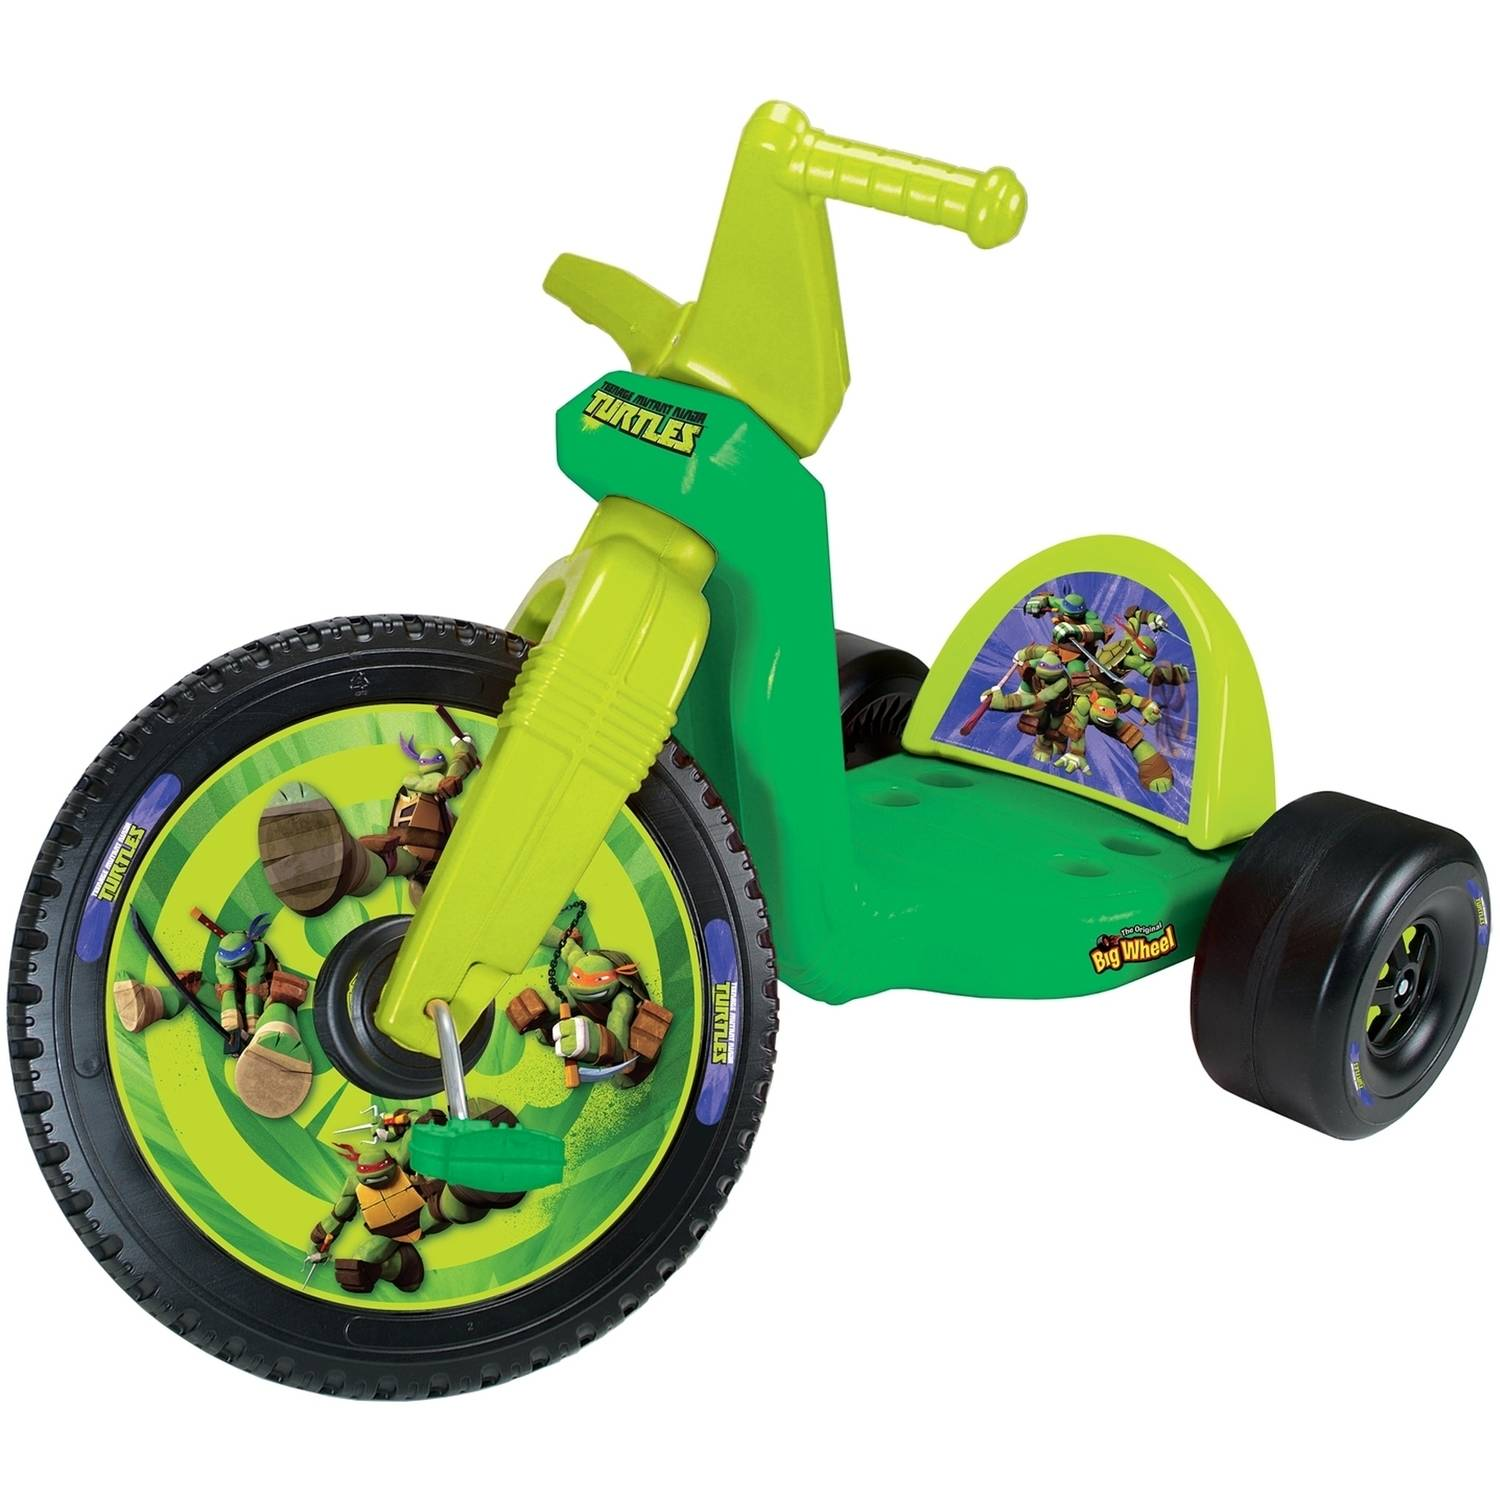 bd9e5526505 Ninja Turtle Bike Helmet For 3 Year Old